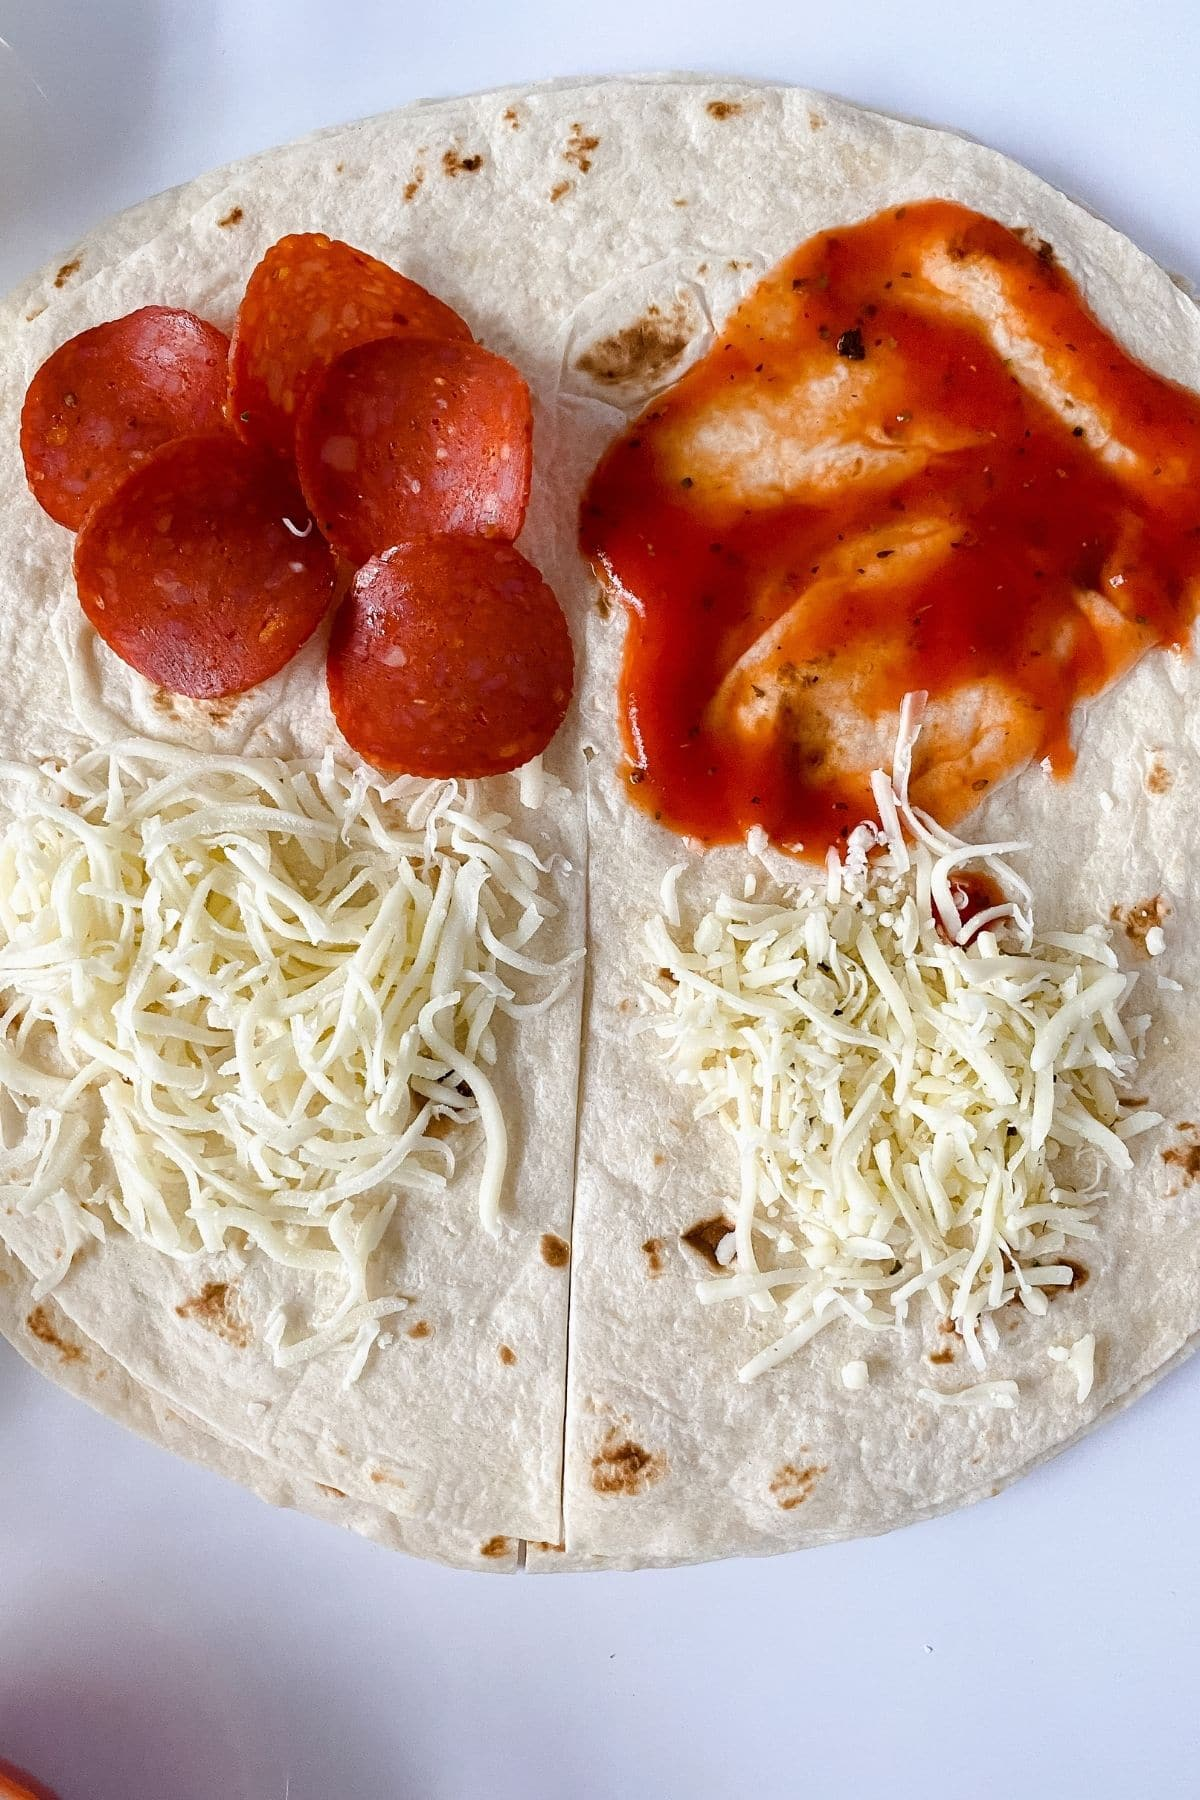 Toppings on tortilla